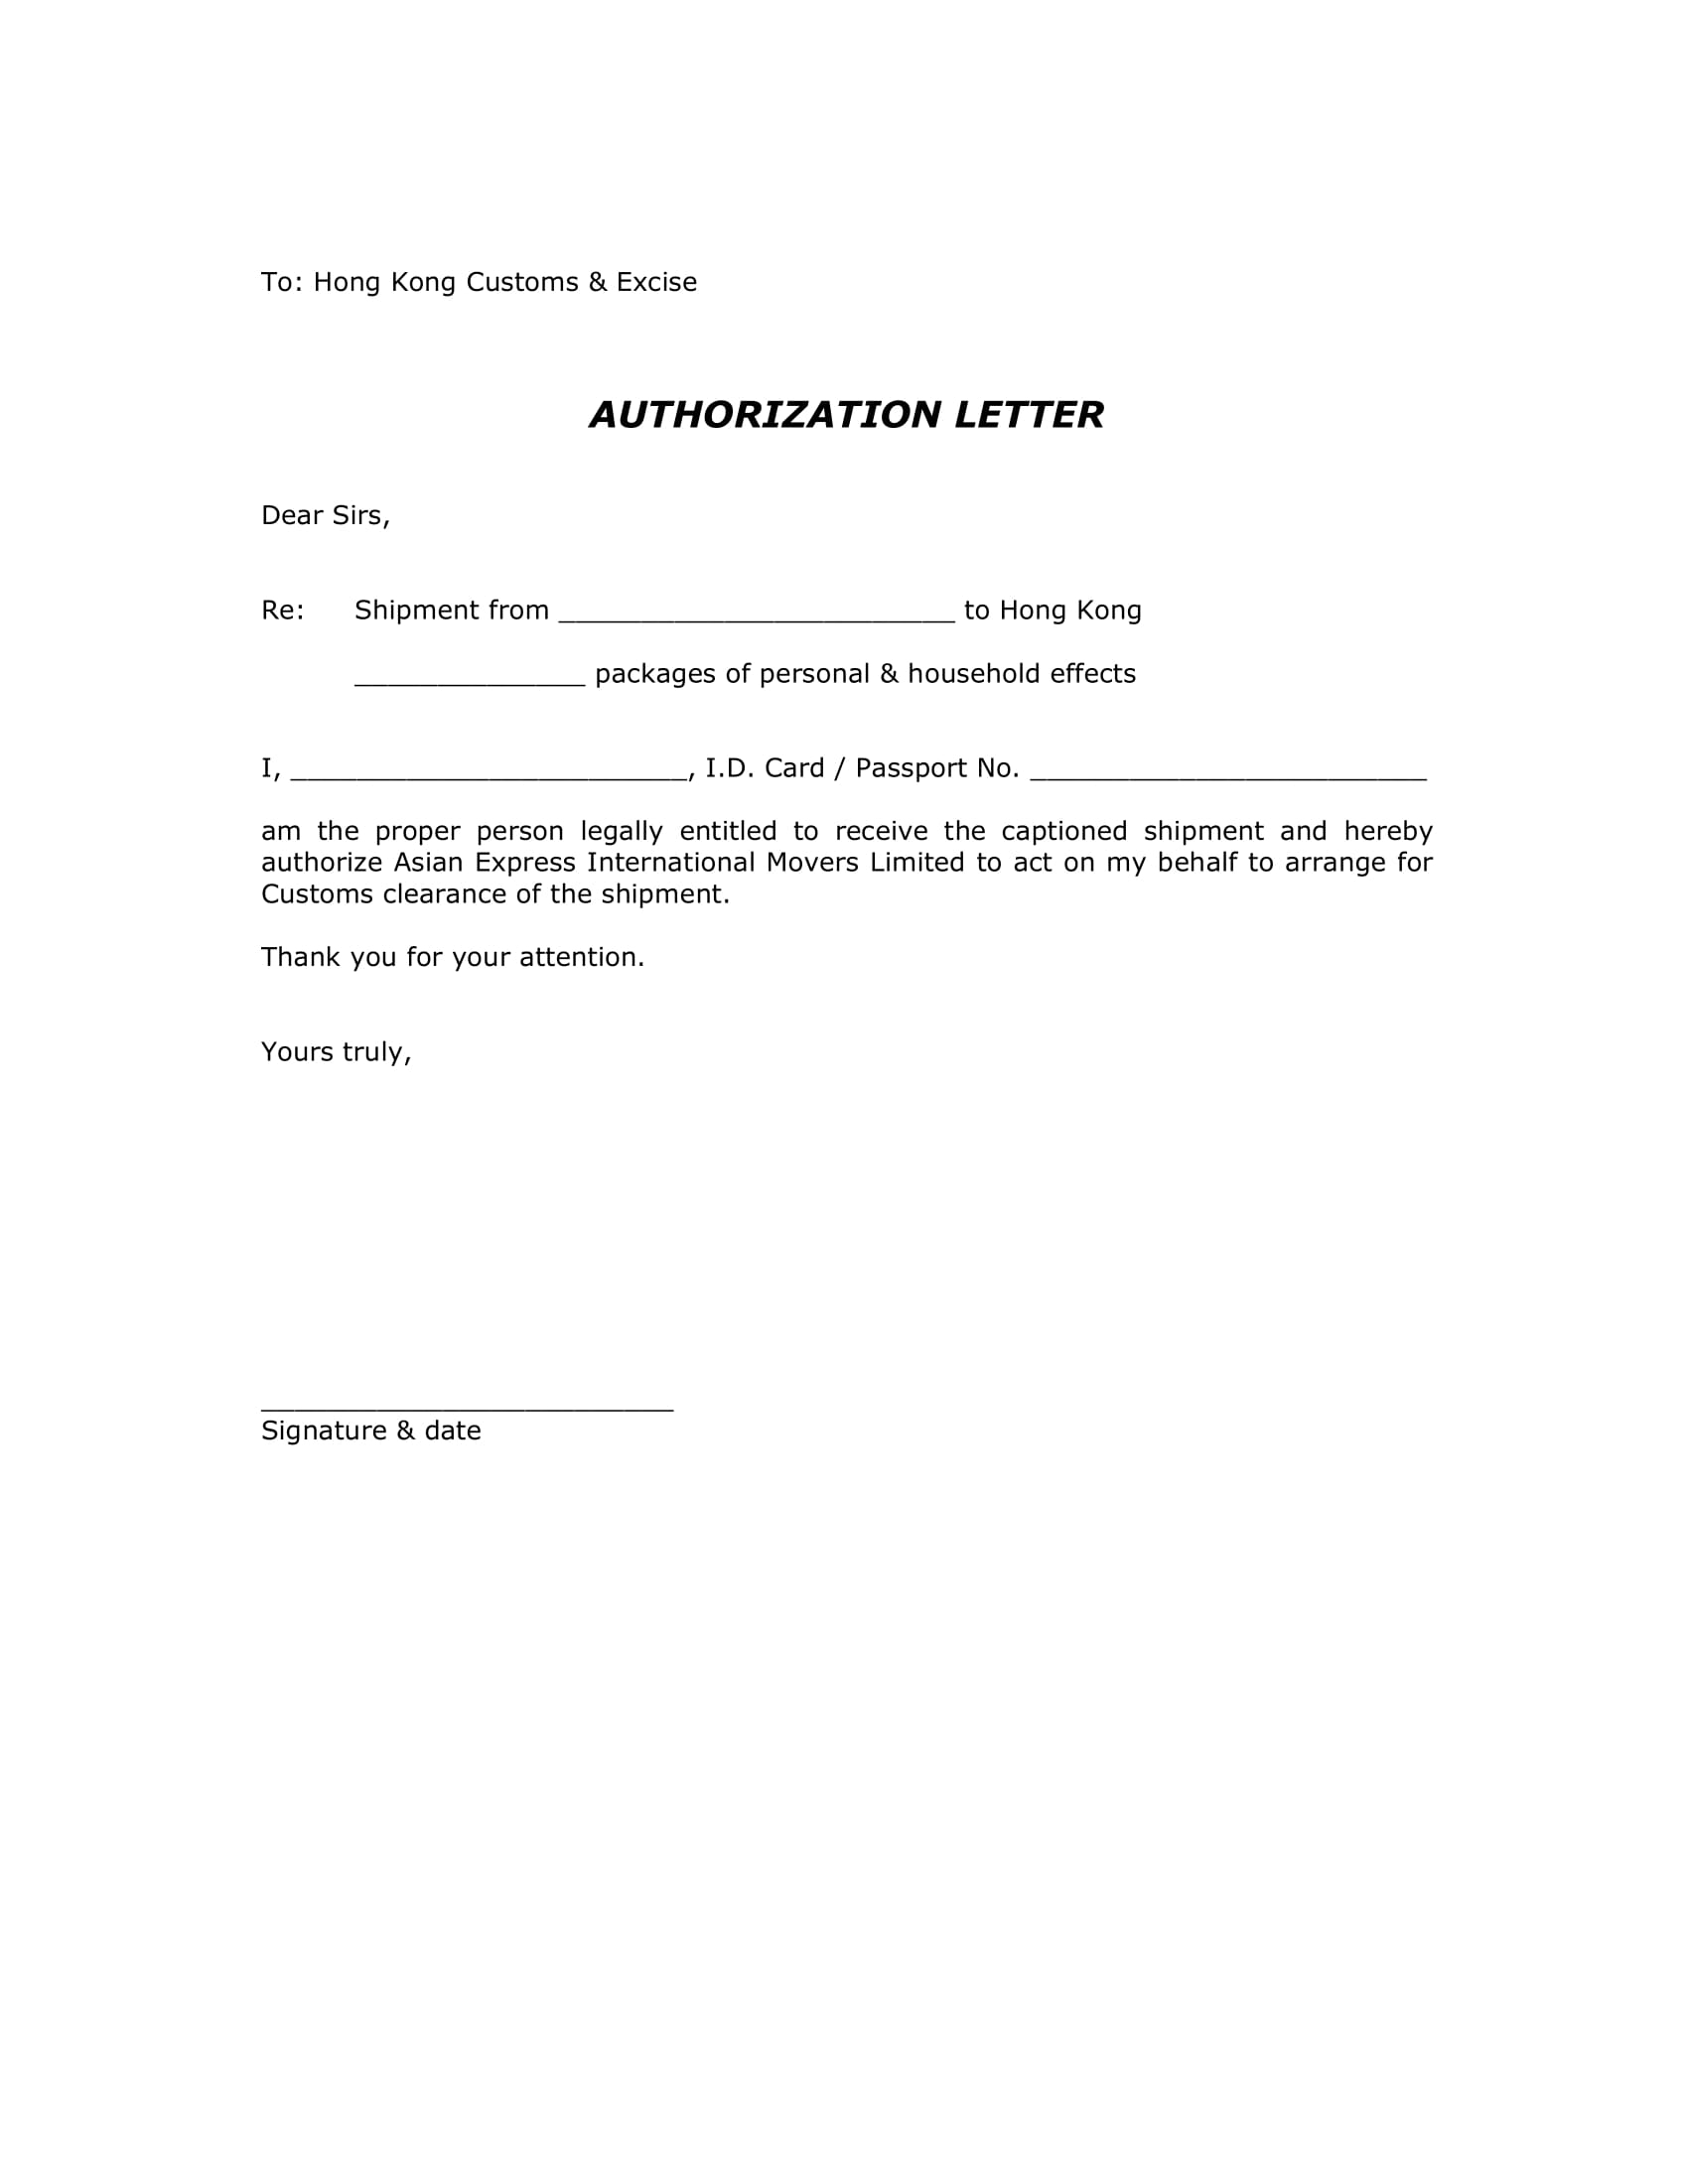 authorization letter to claim package example